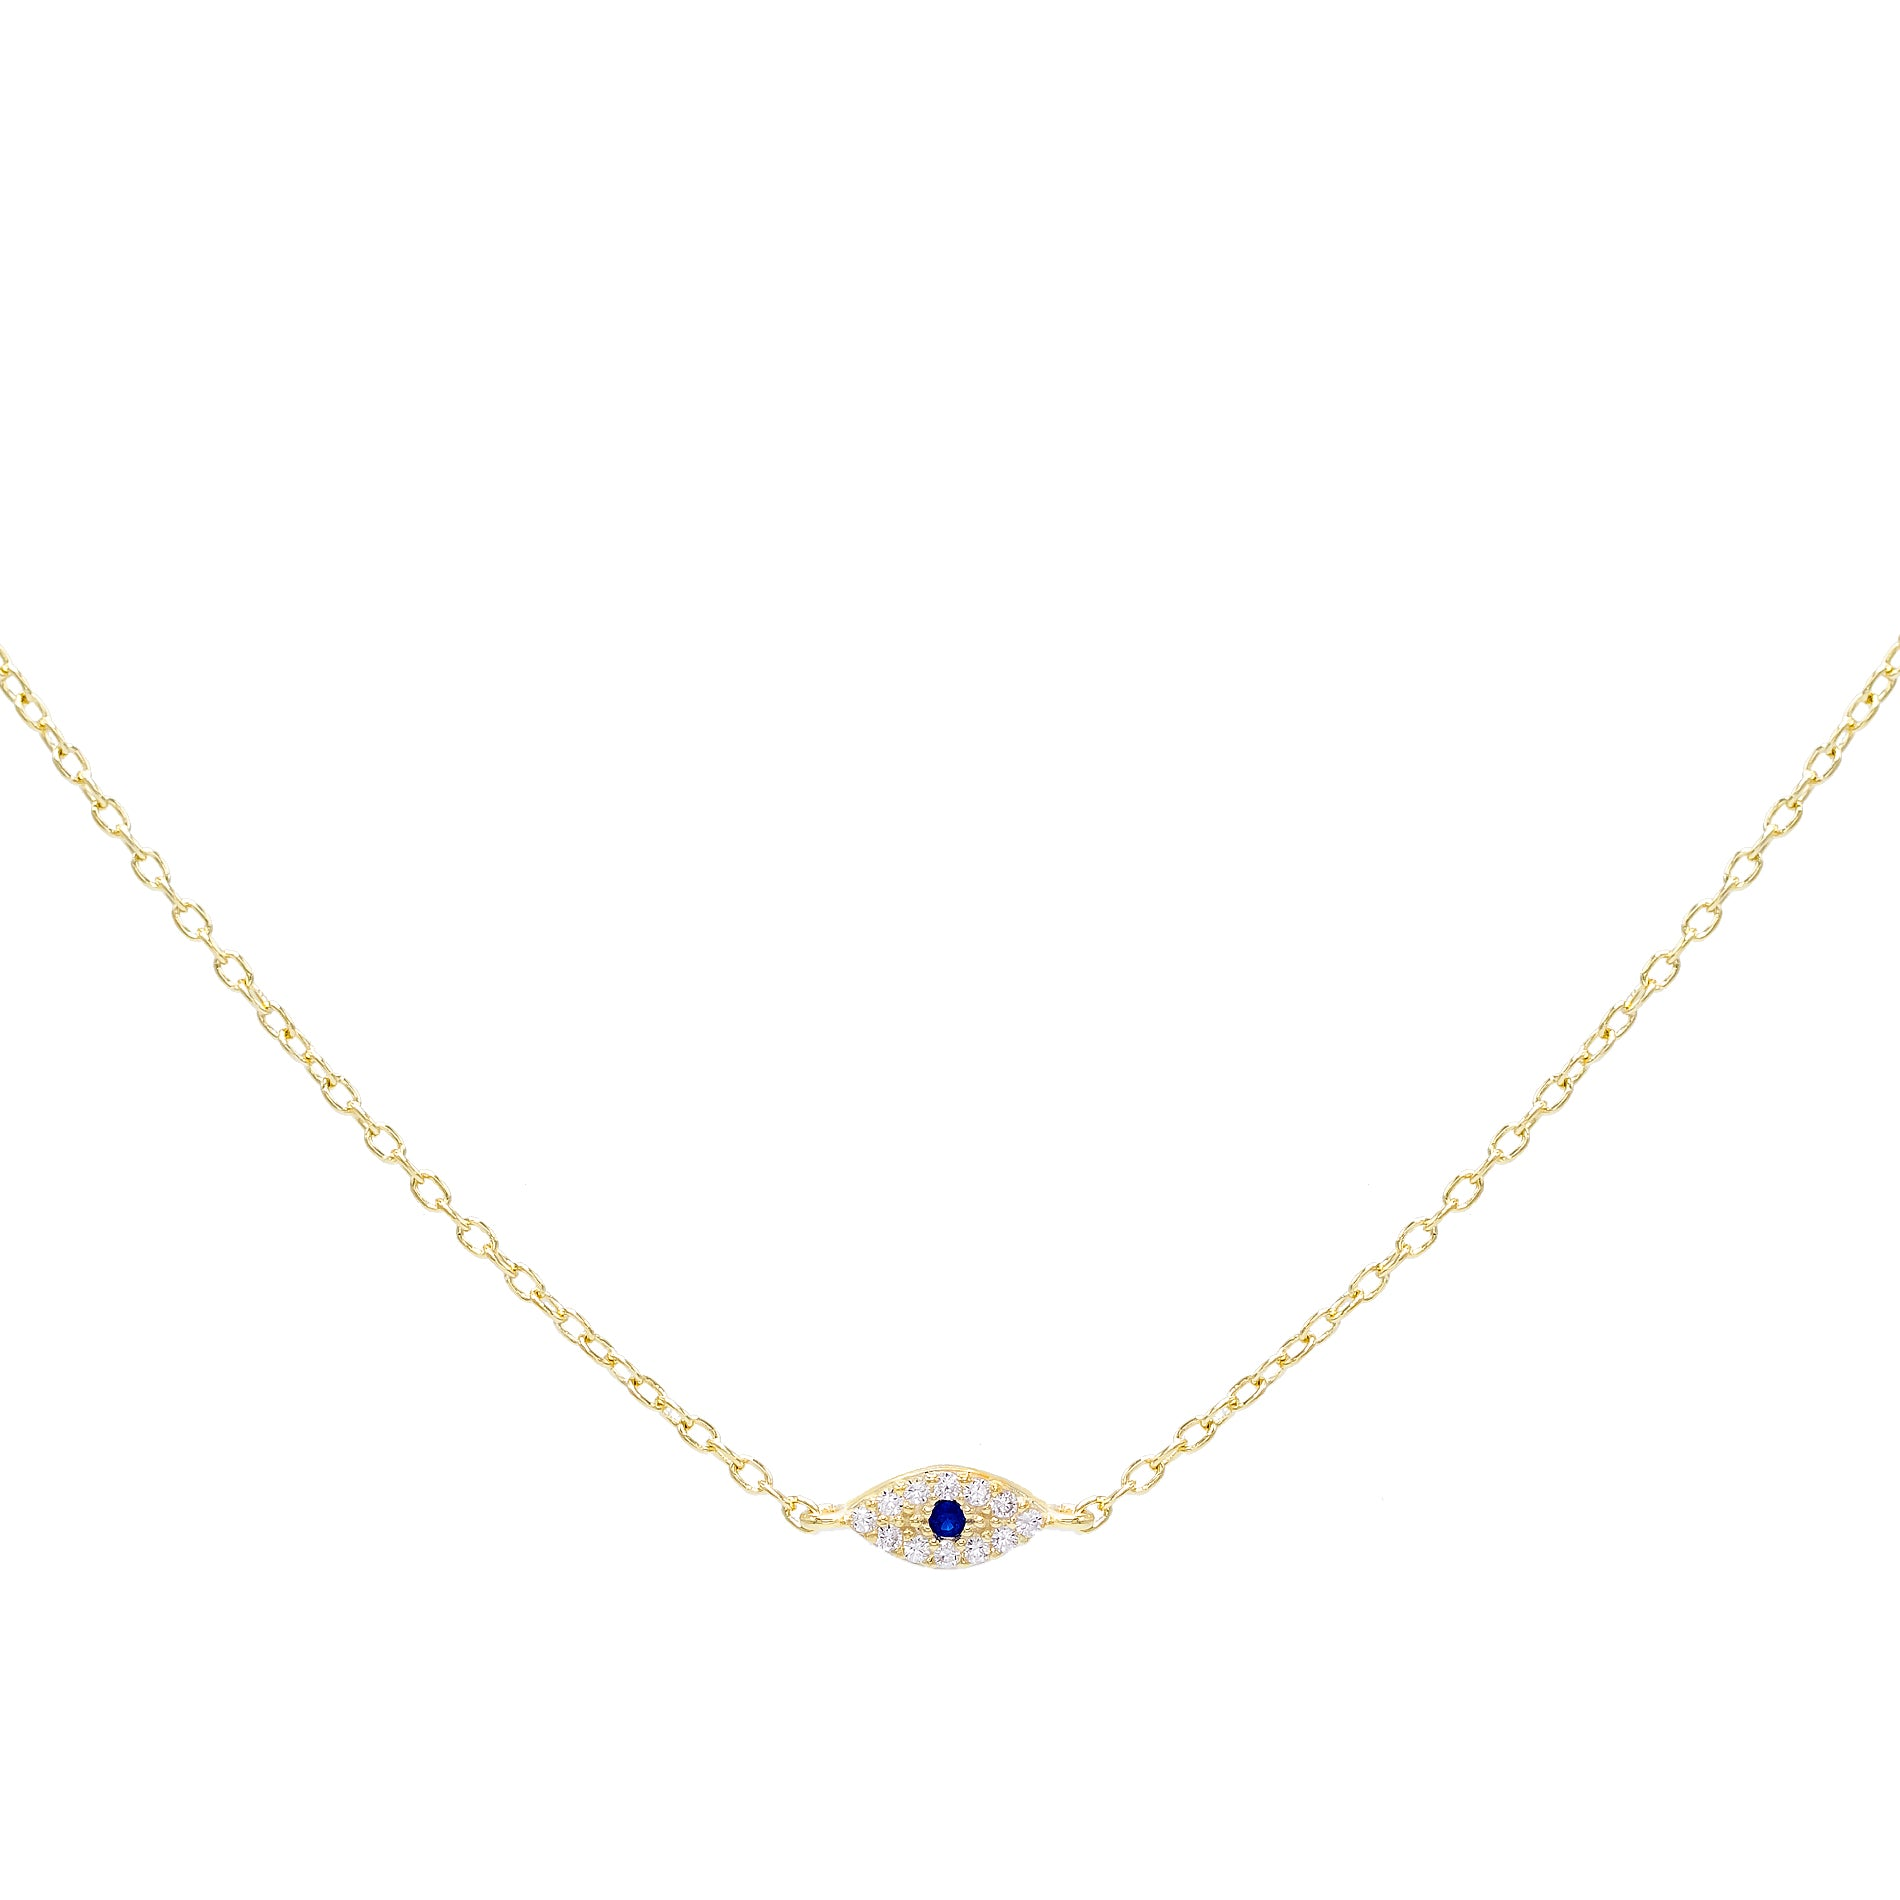 Mini Evil Eye Necklace Sapphire Blue | Urban Accessories NYC